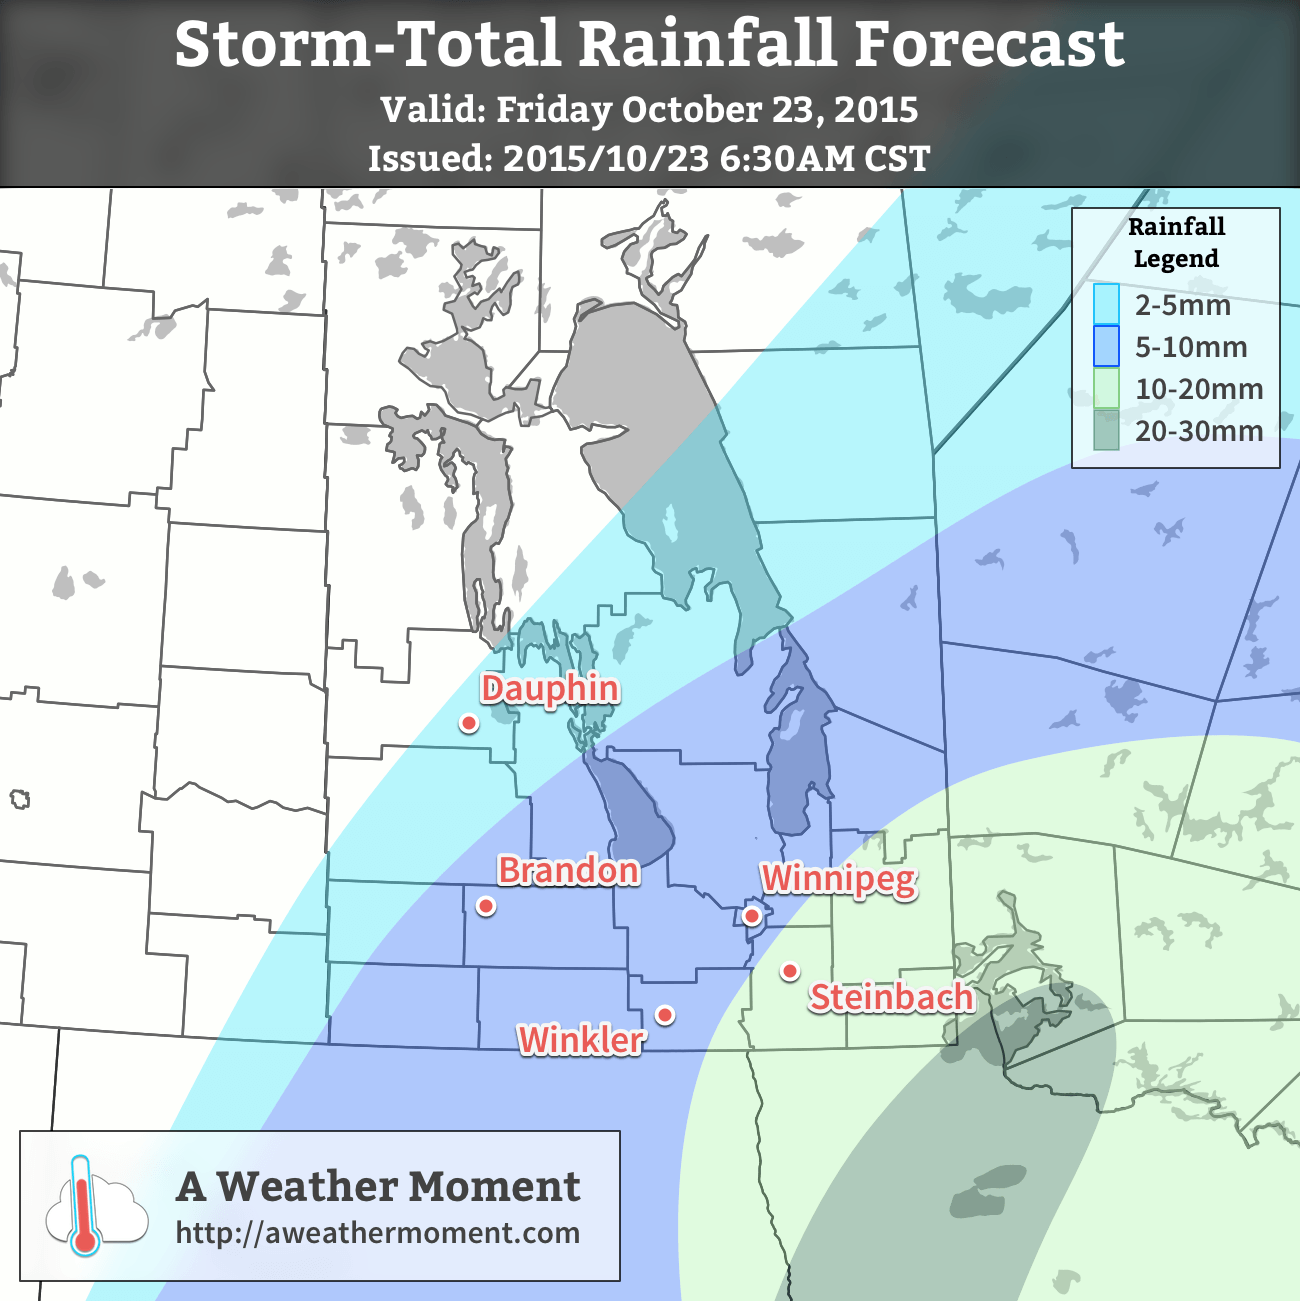 Storm-Total Rainfall Outlook